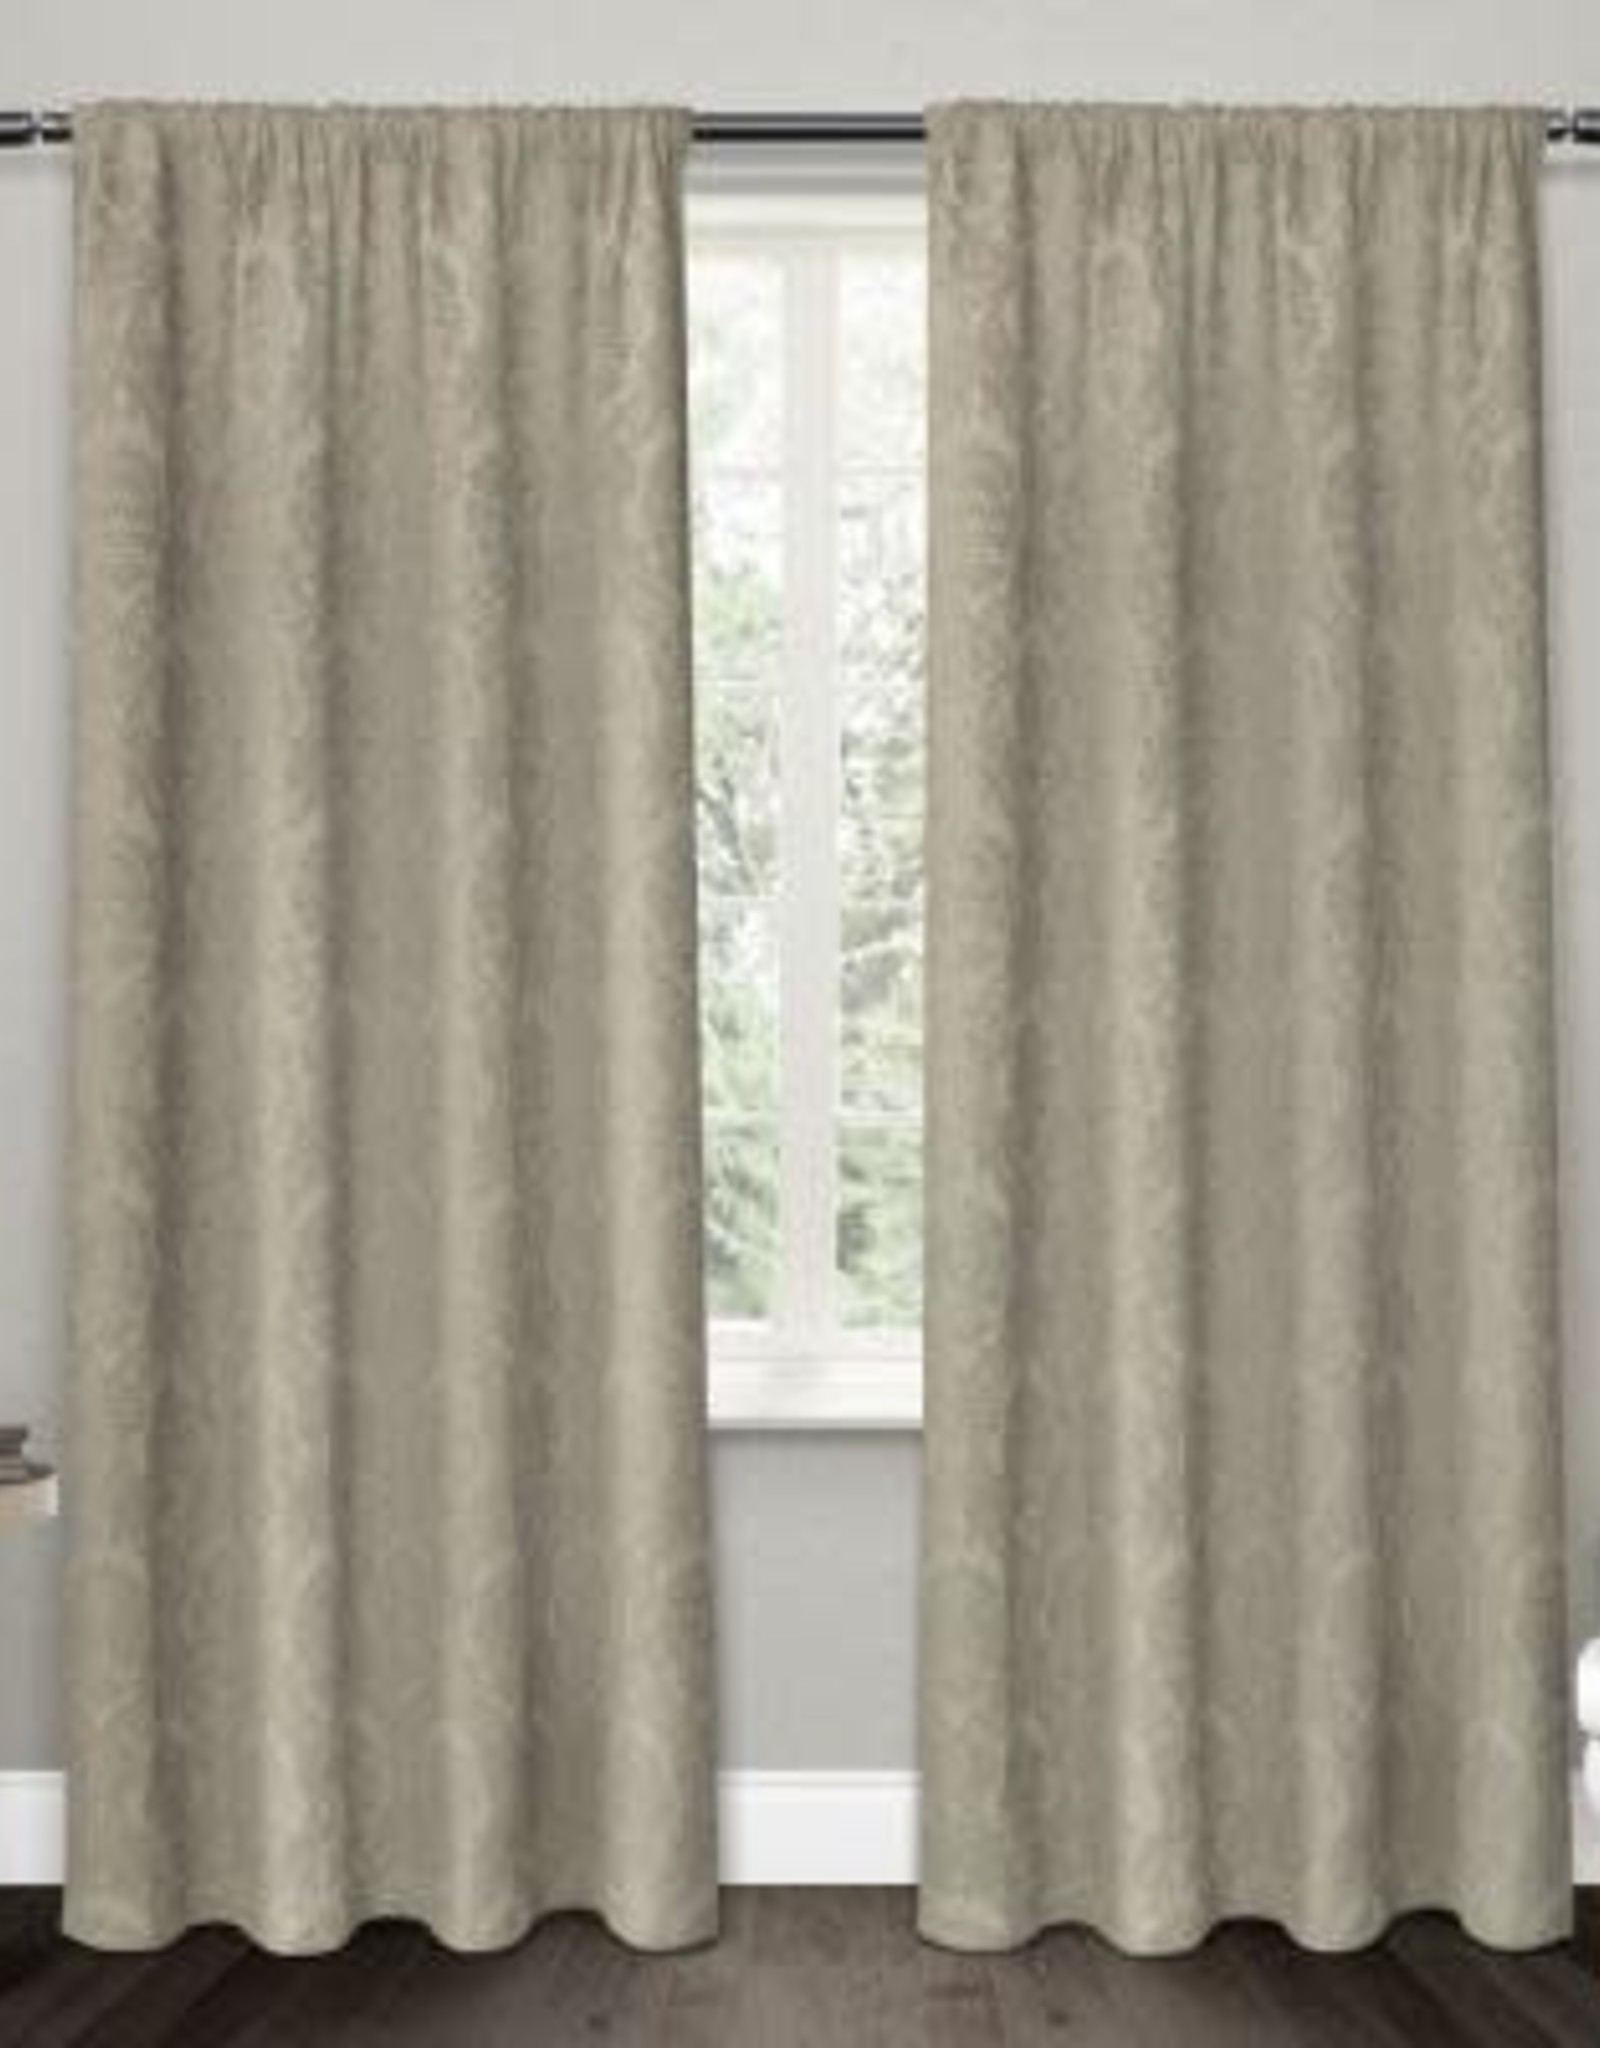 Curtains CasaDecor Taupe Flore 54x84